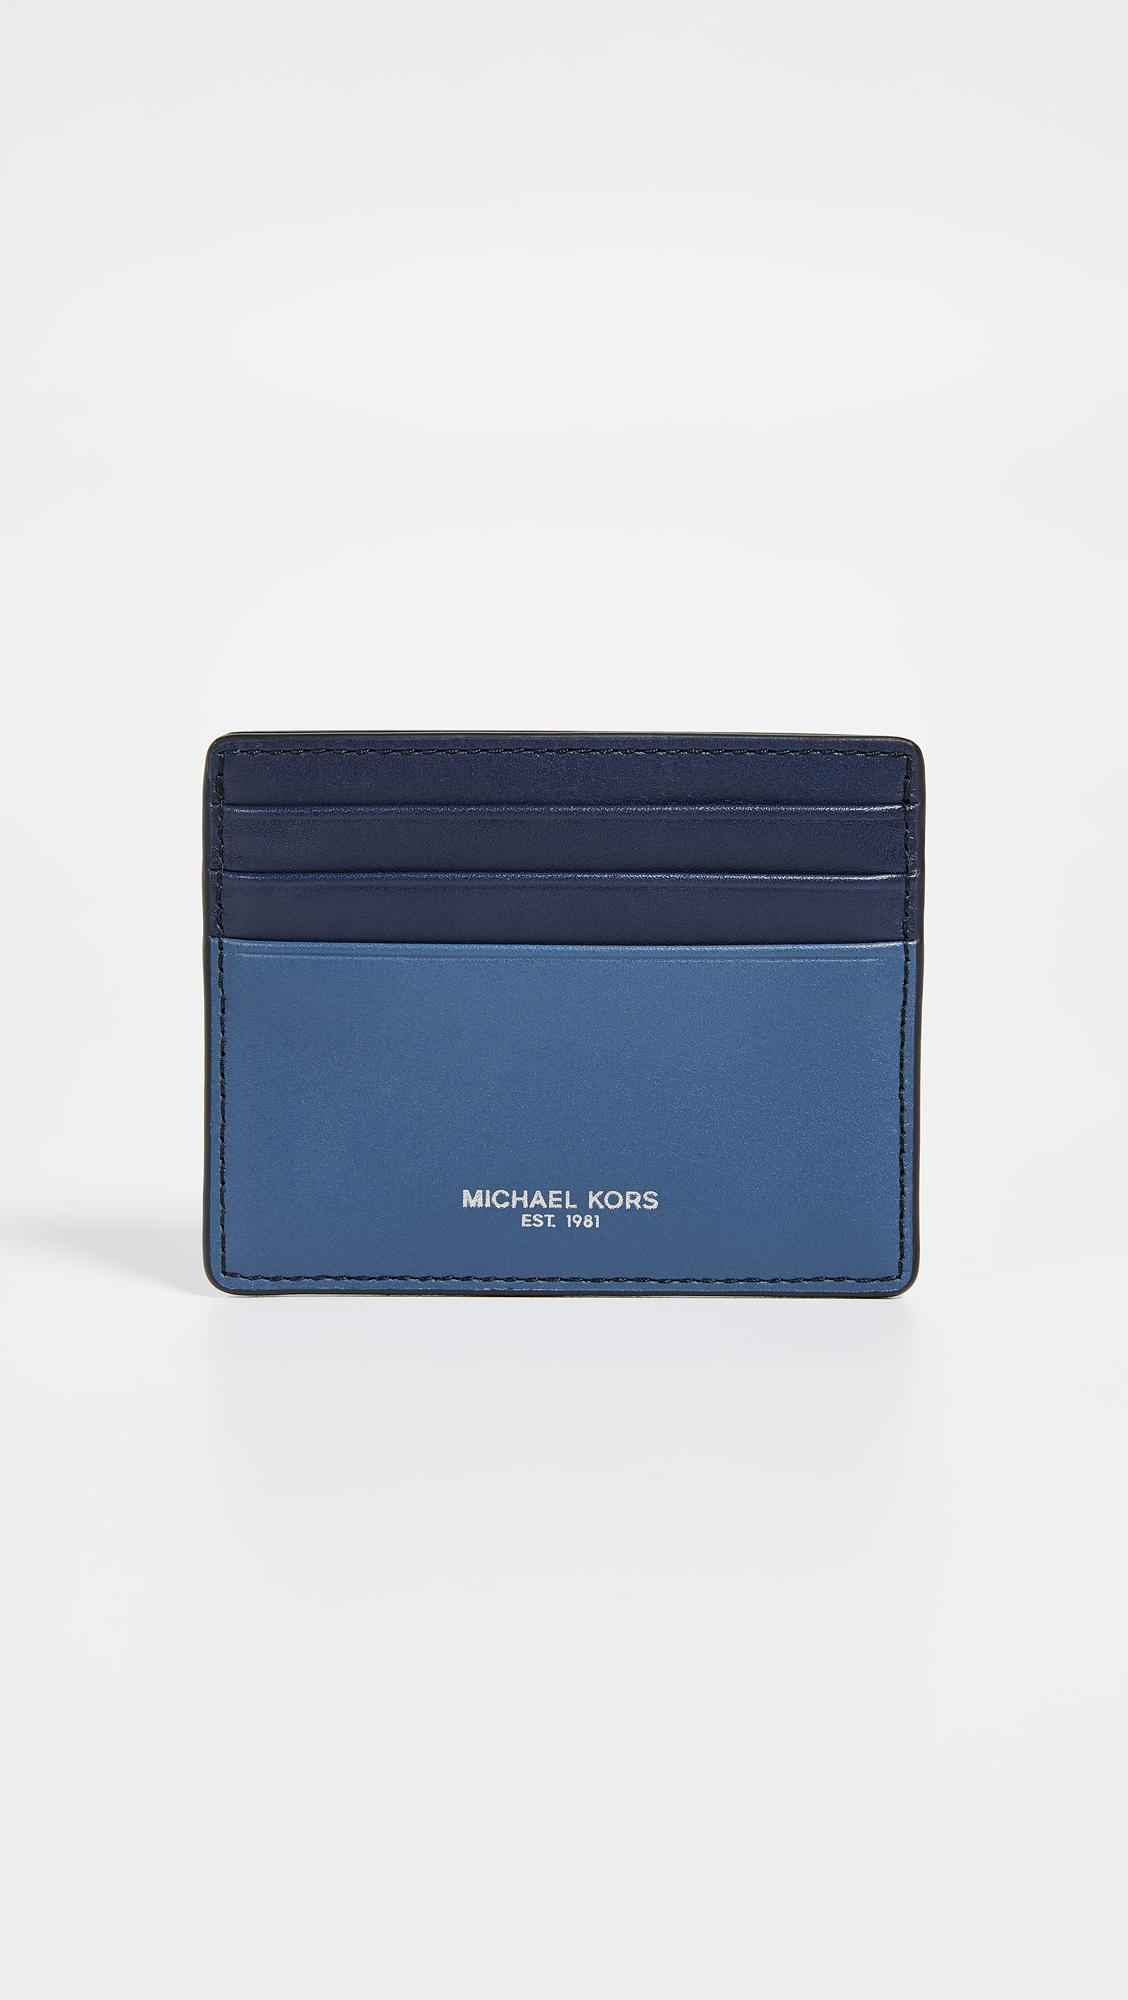 4cc8ab305fcd Lyst - Michael Kors Henry Tall Card Case in Blue for Men